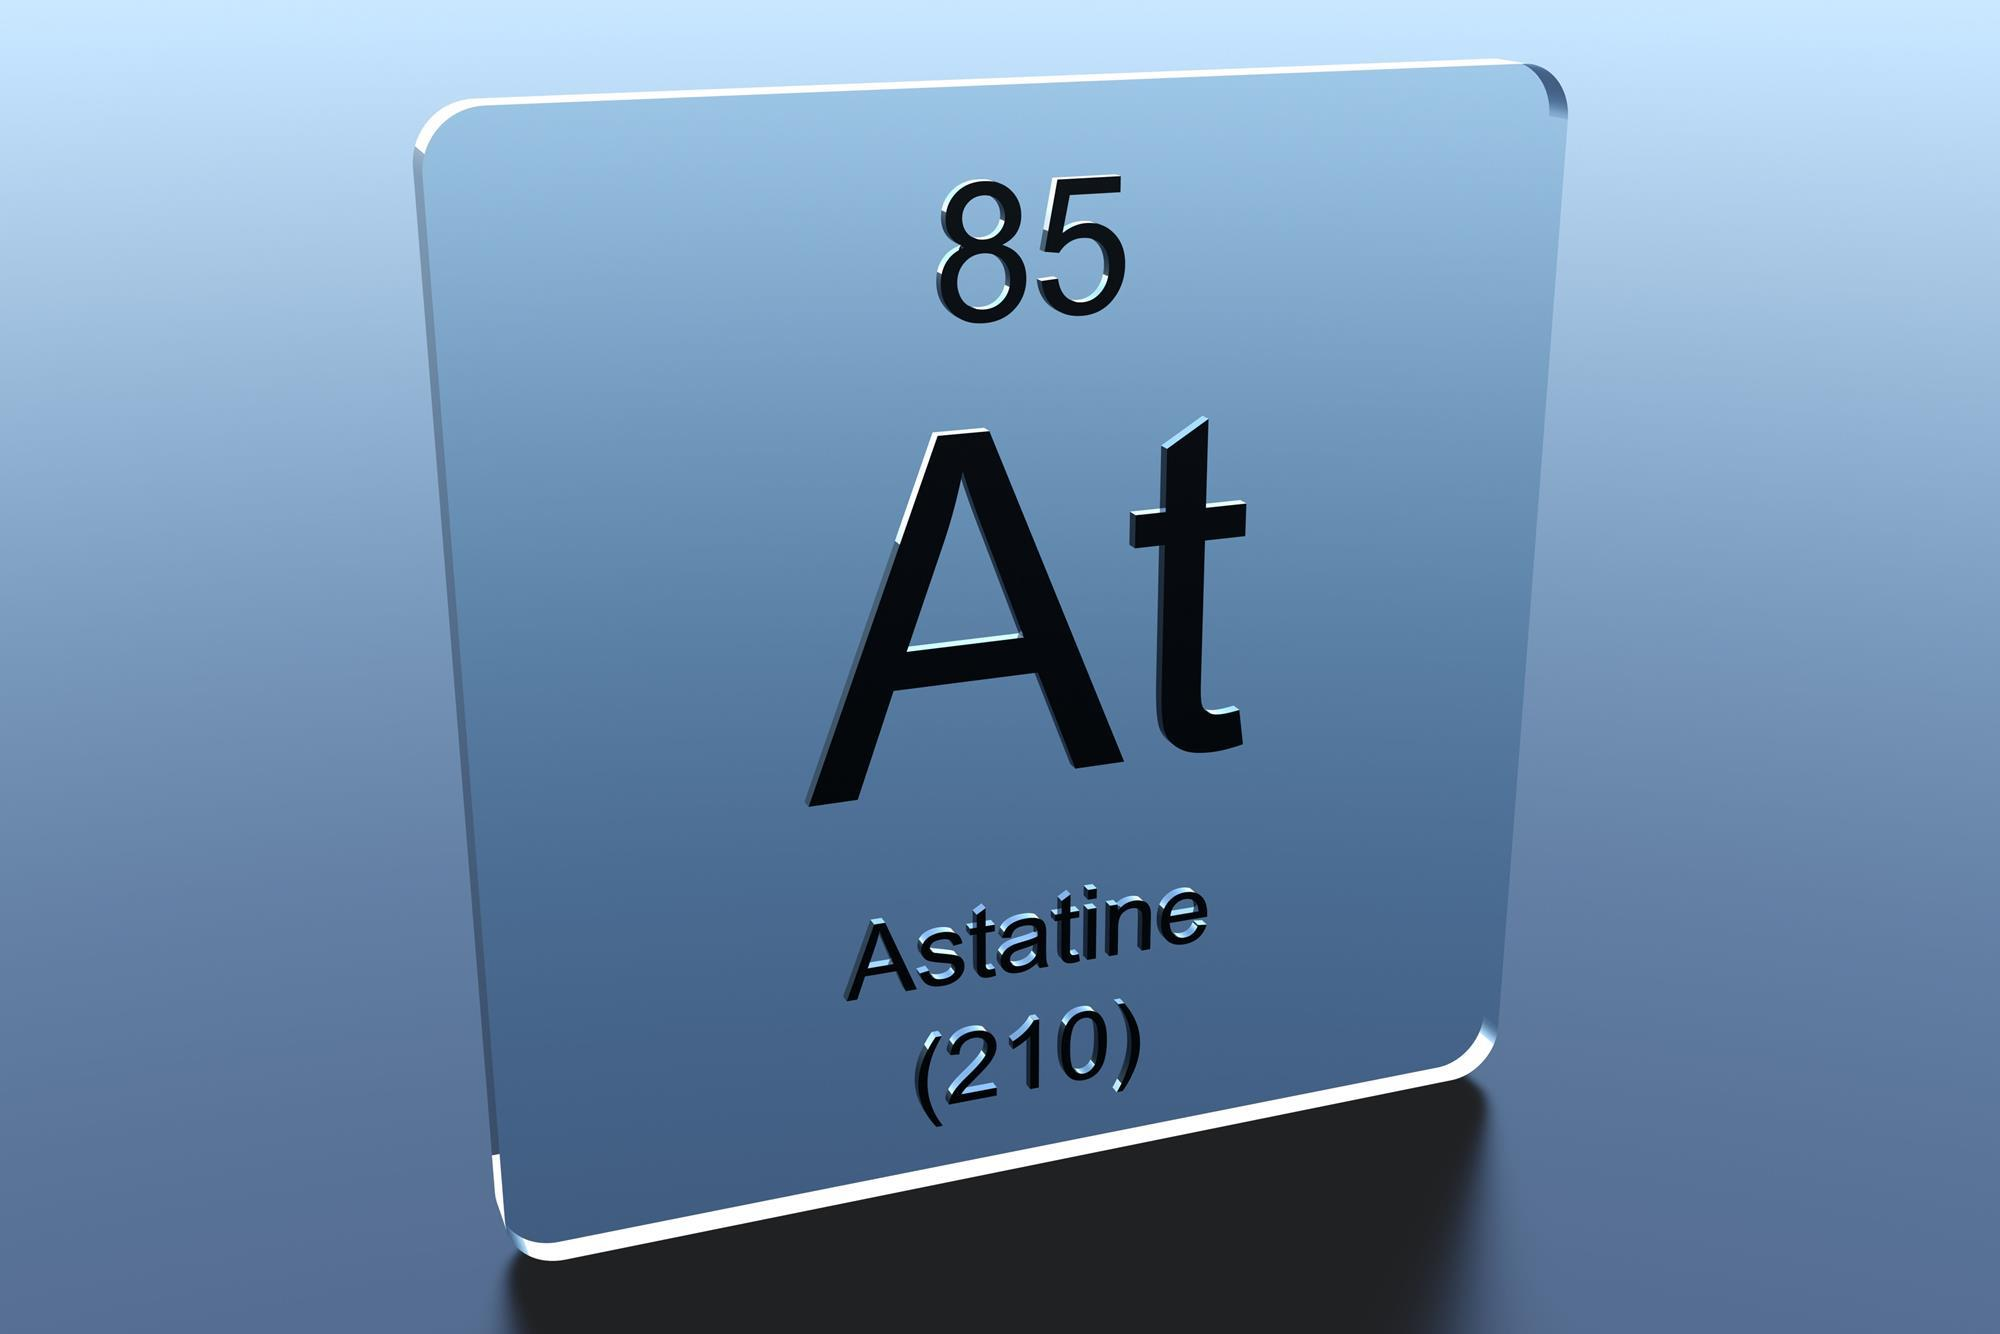 Theory Finds Window For Astatine Species Existence Research